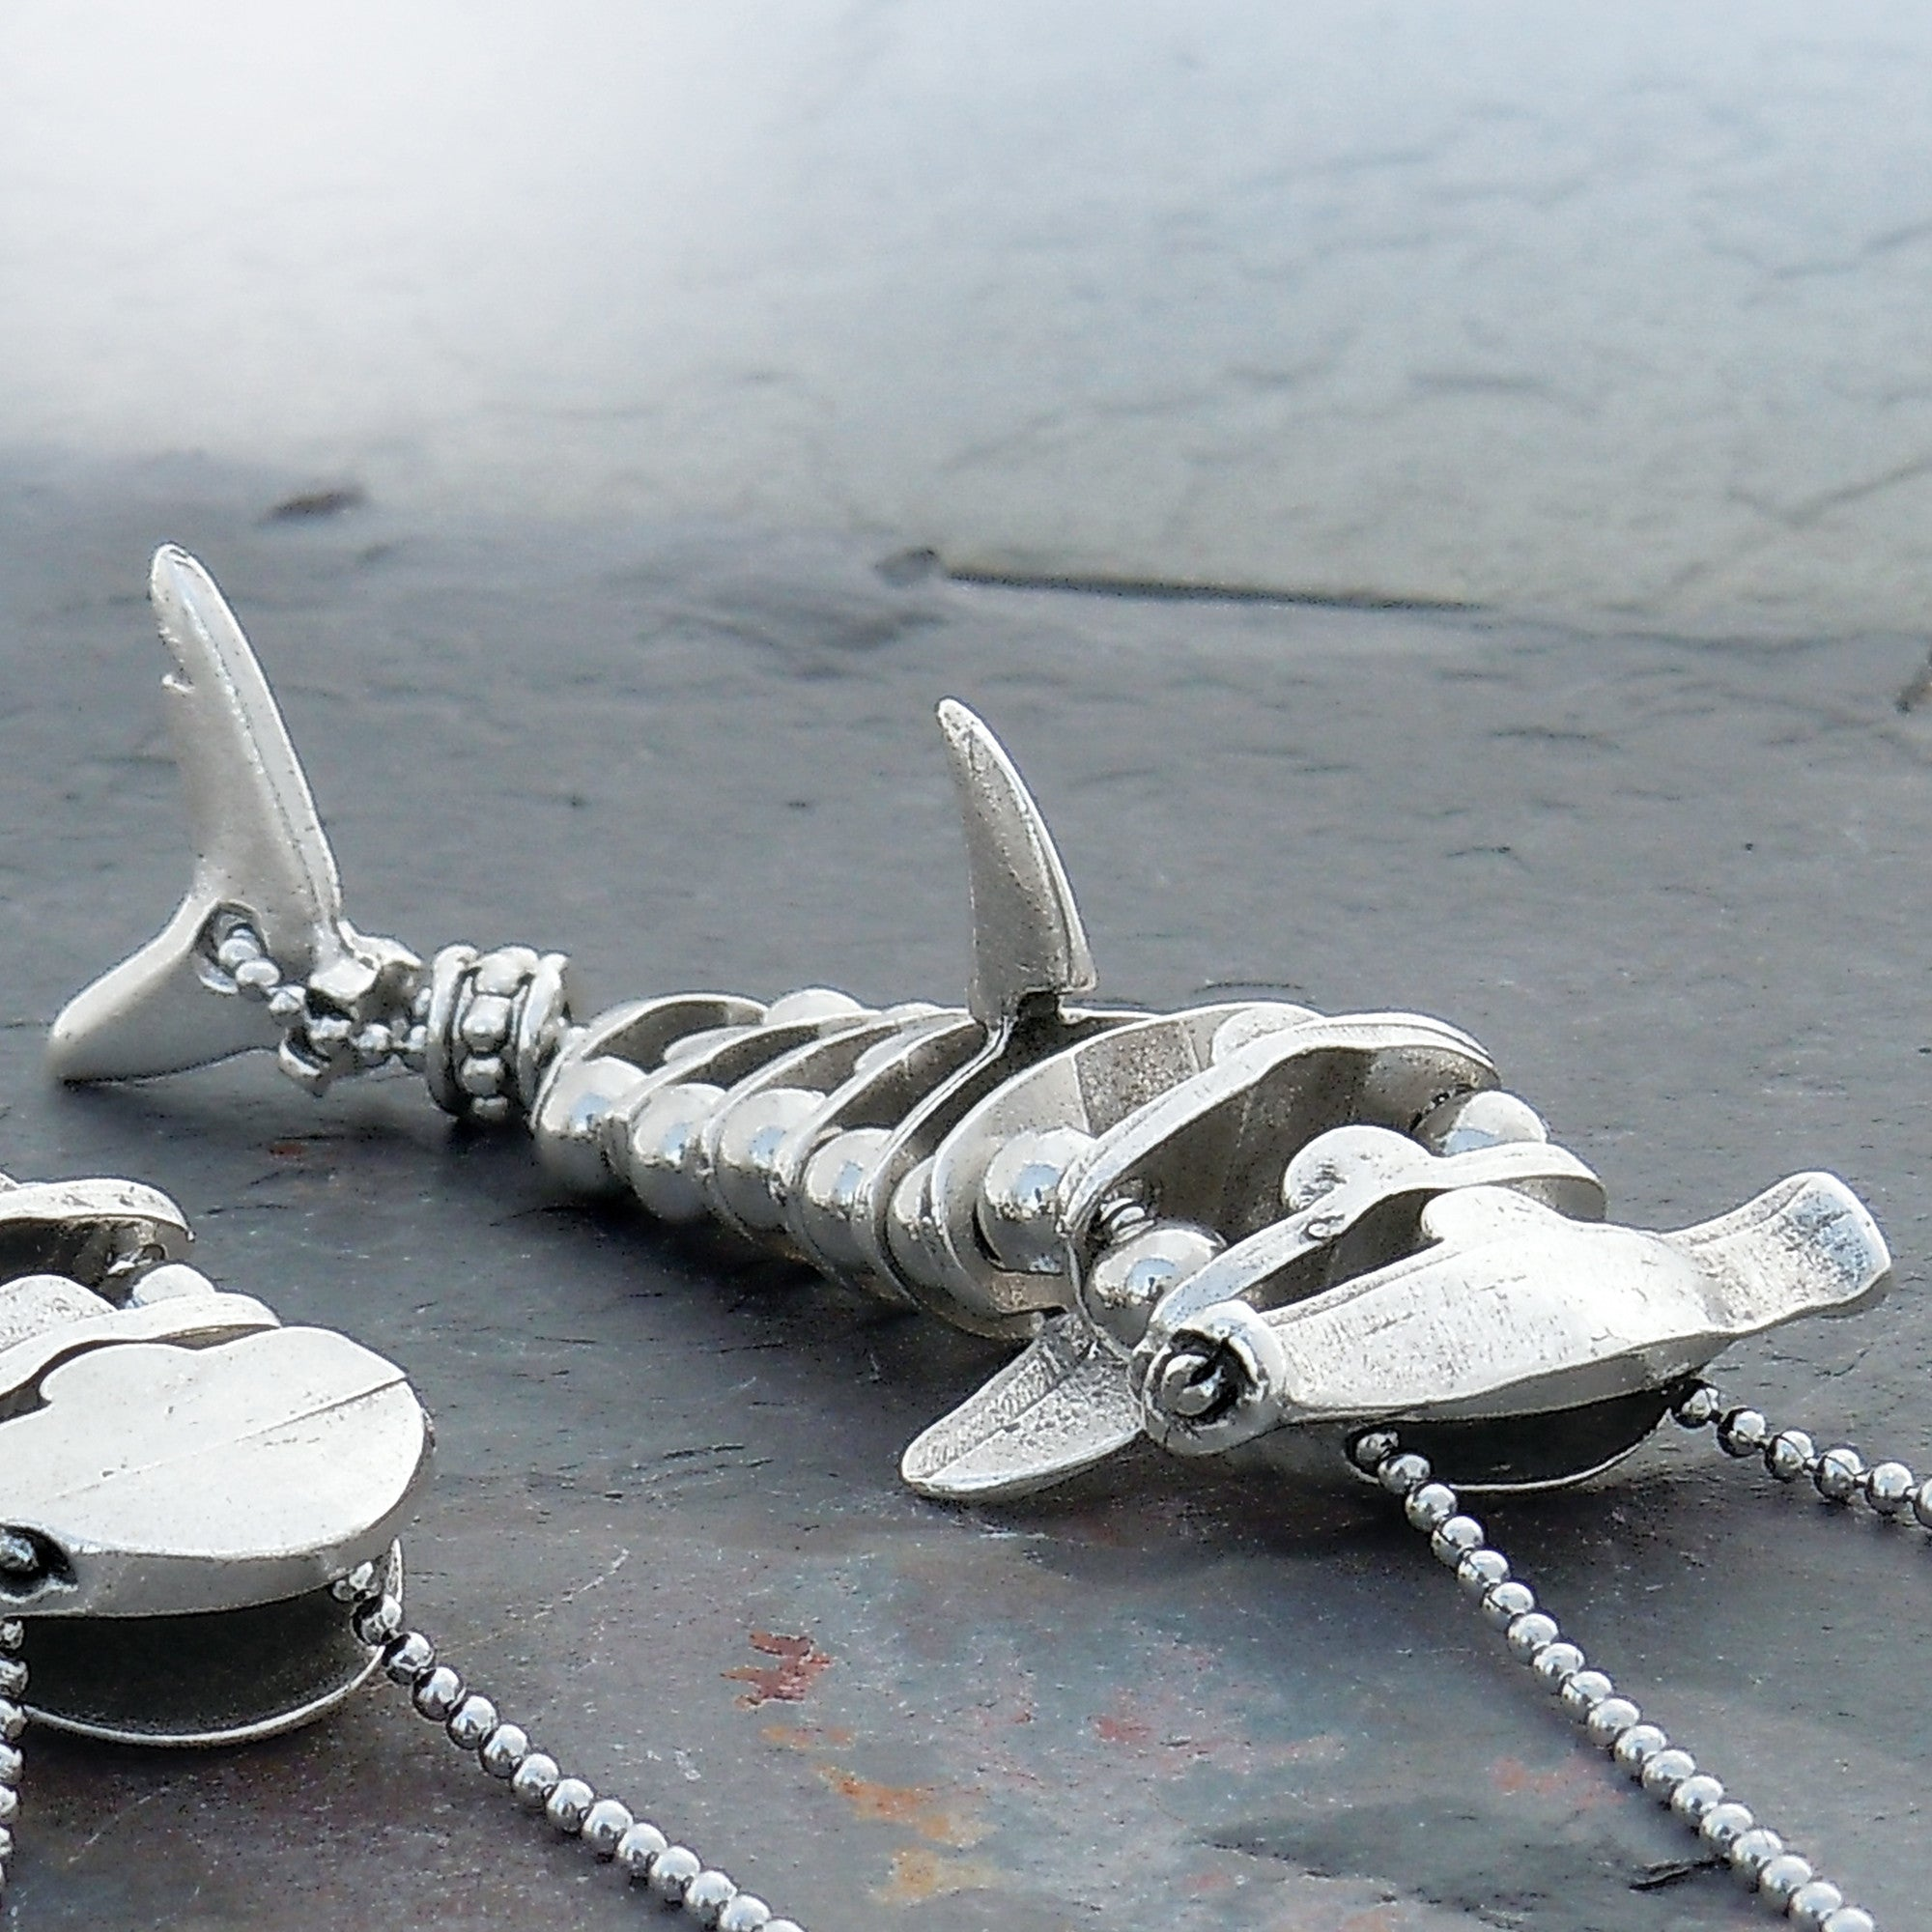 medium sharknecklace shop etsy latest pendant addition the excited pin shark hammerhead share my to necklace